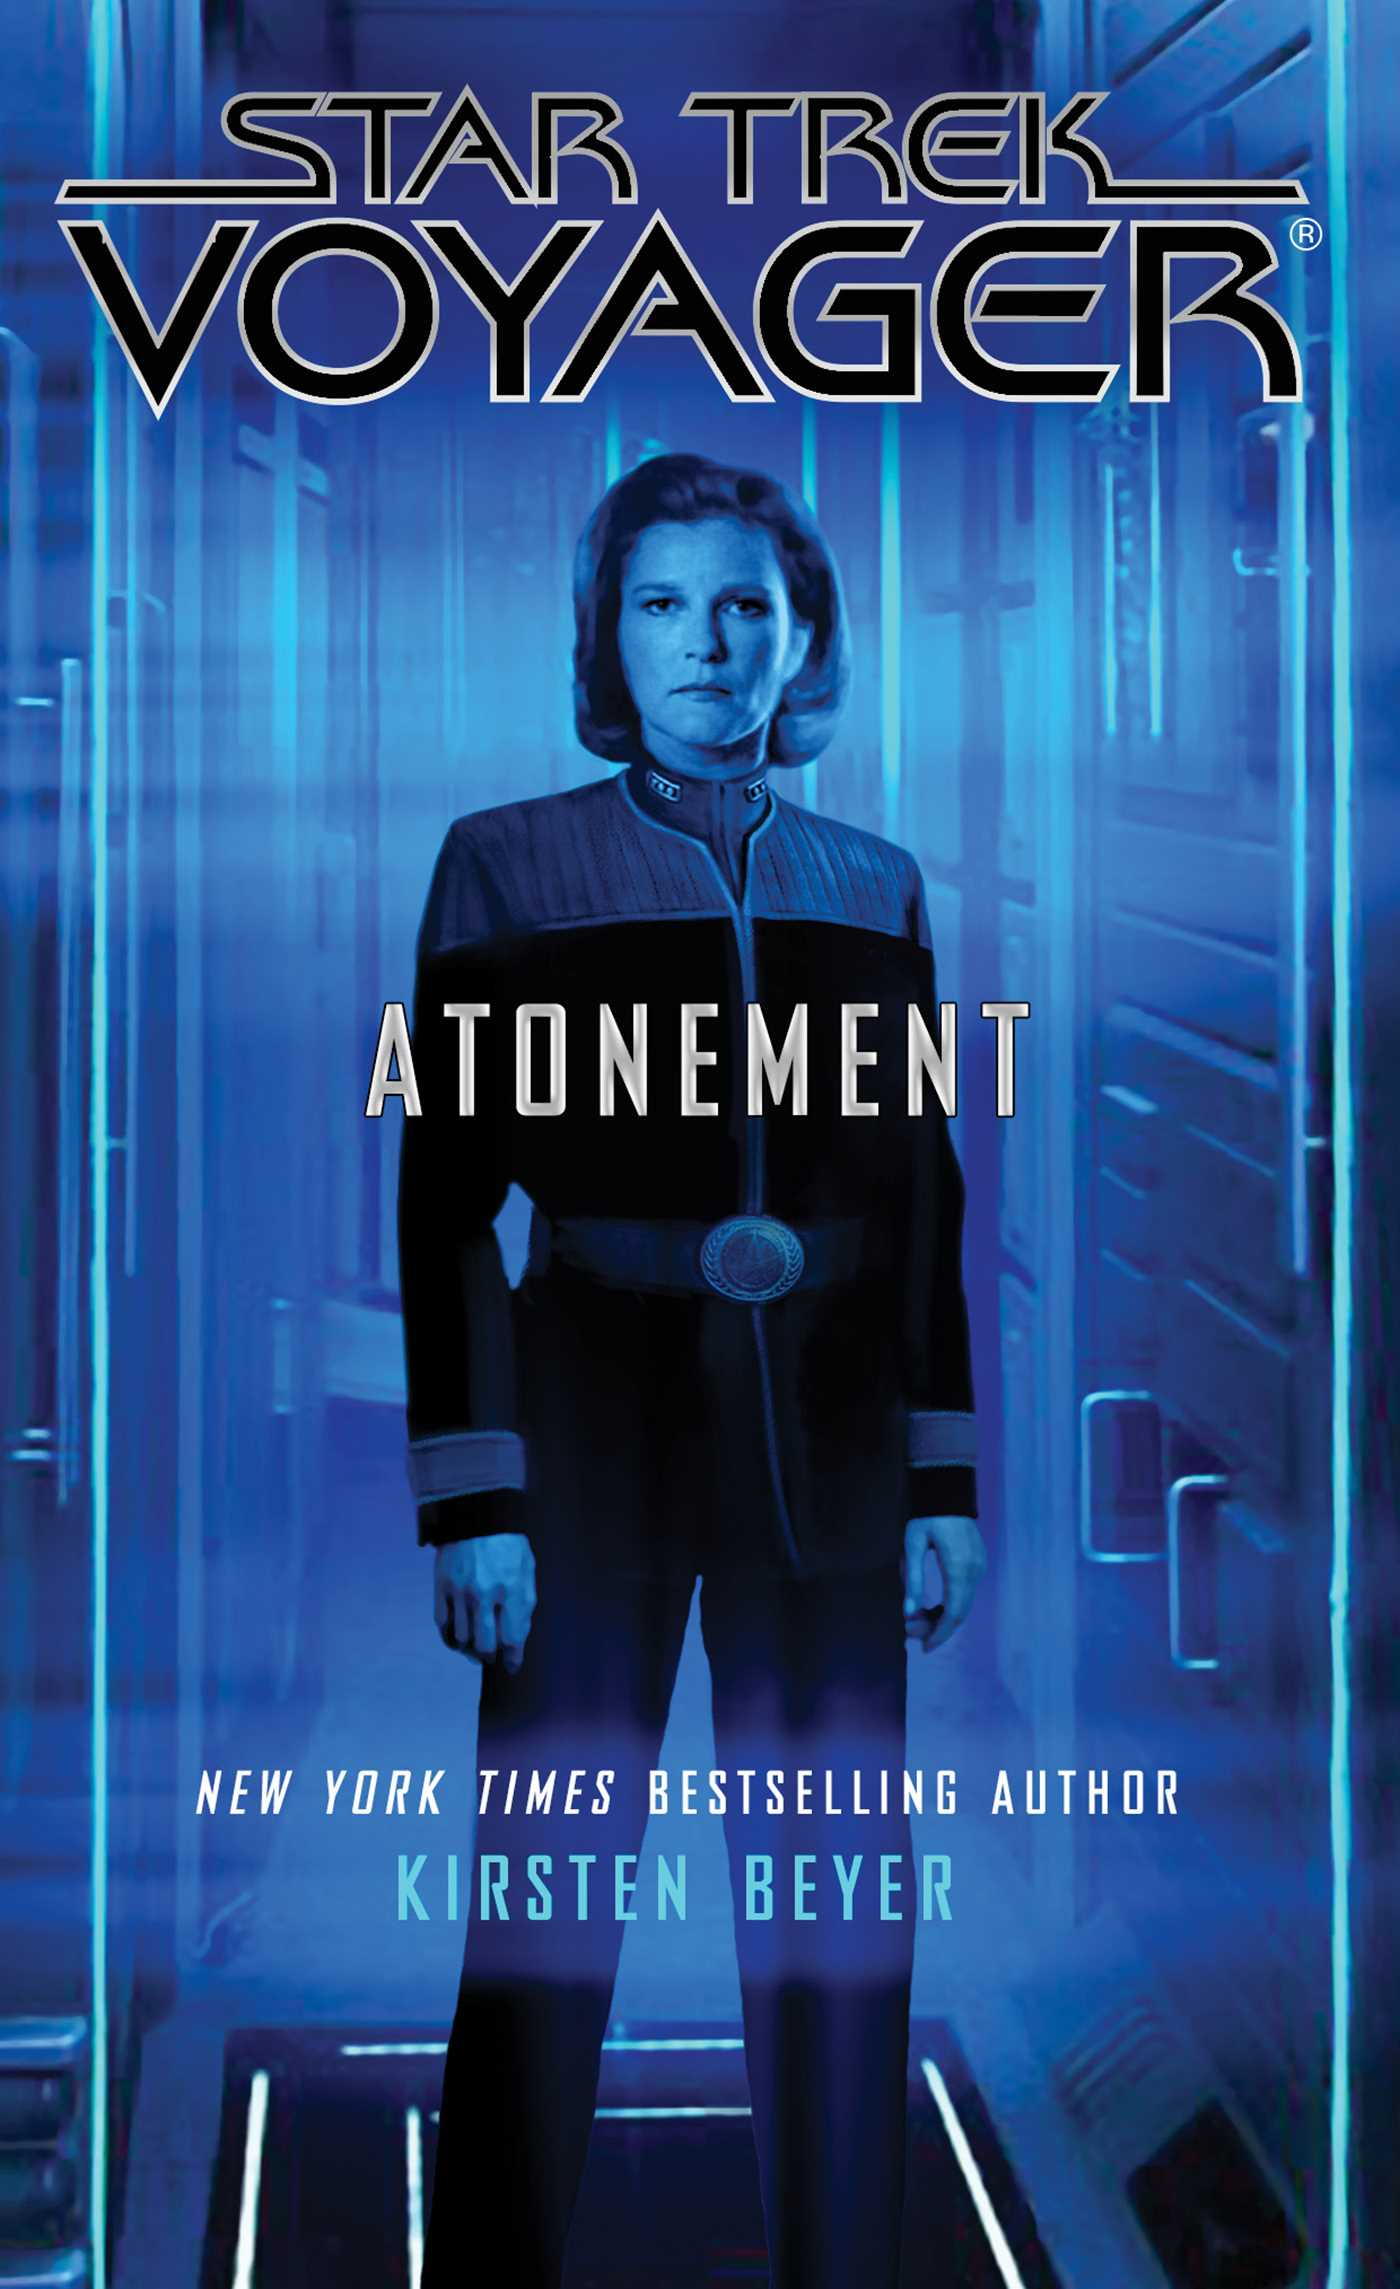 Star trek voyager atonement 9781476790831 hr